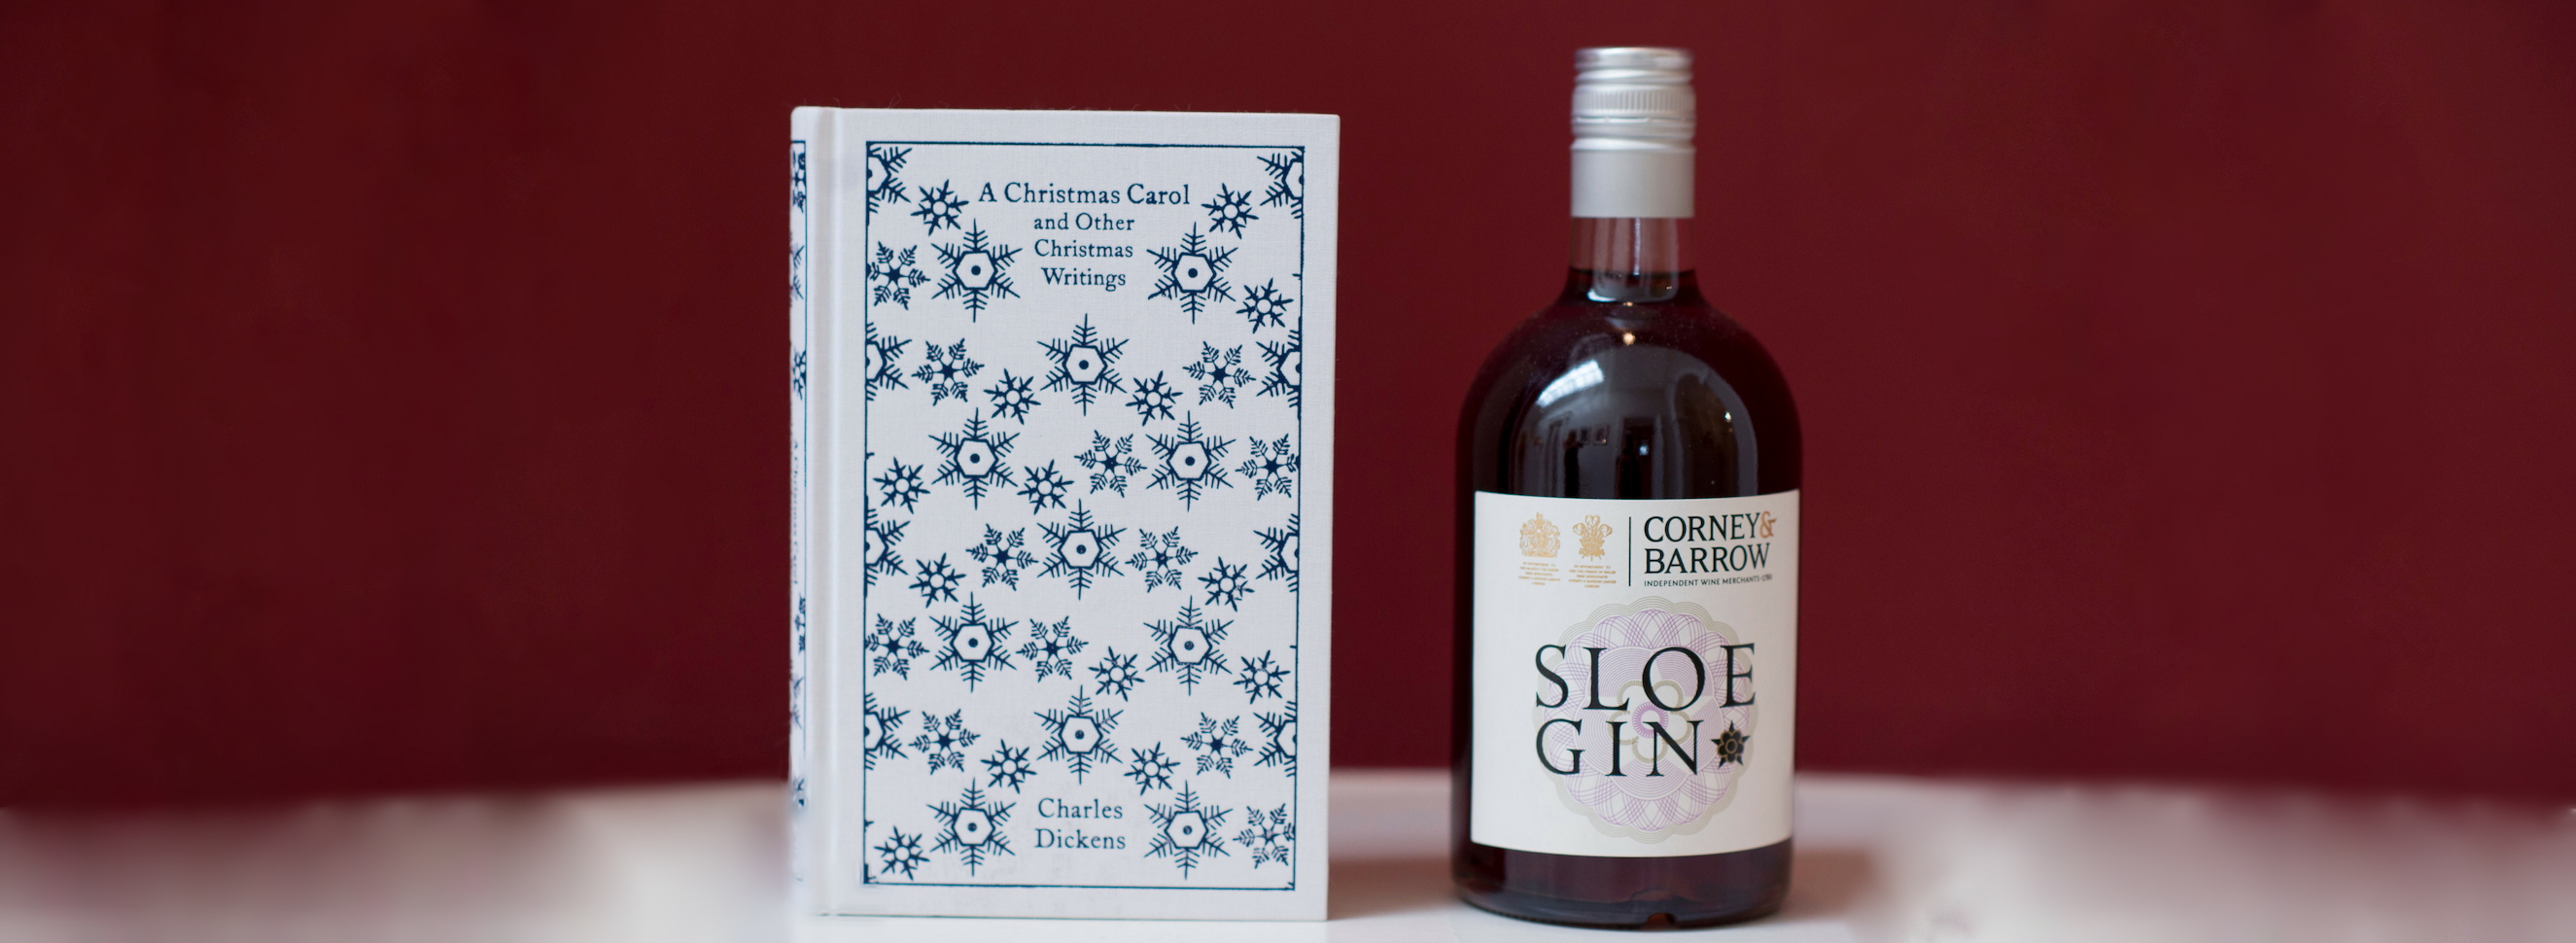 Damian Barr's Seventh #NovelPairing: A taste of Christmas